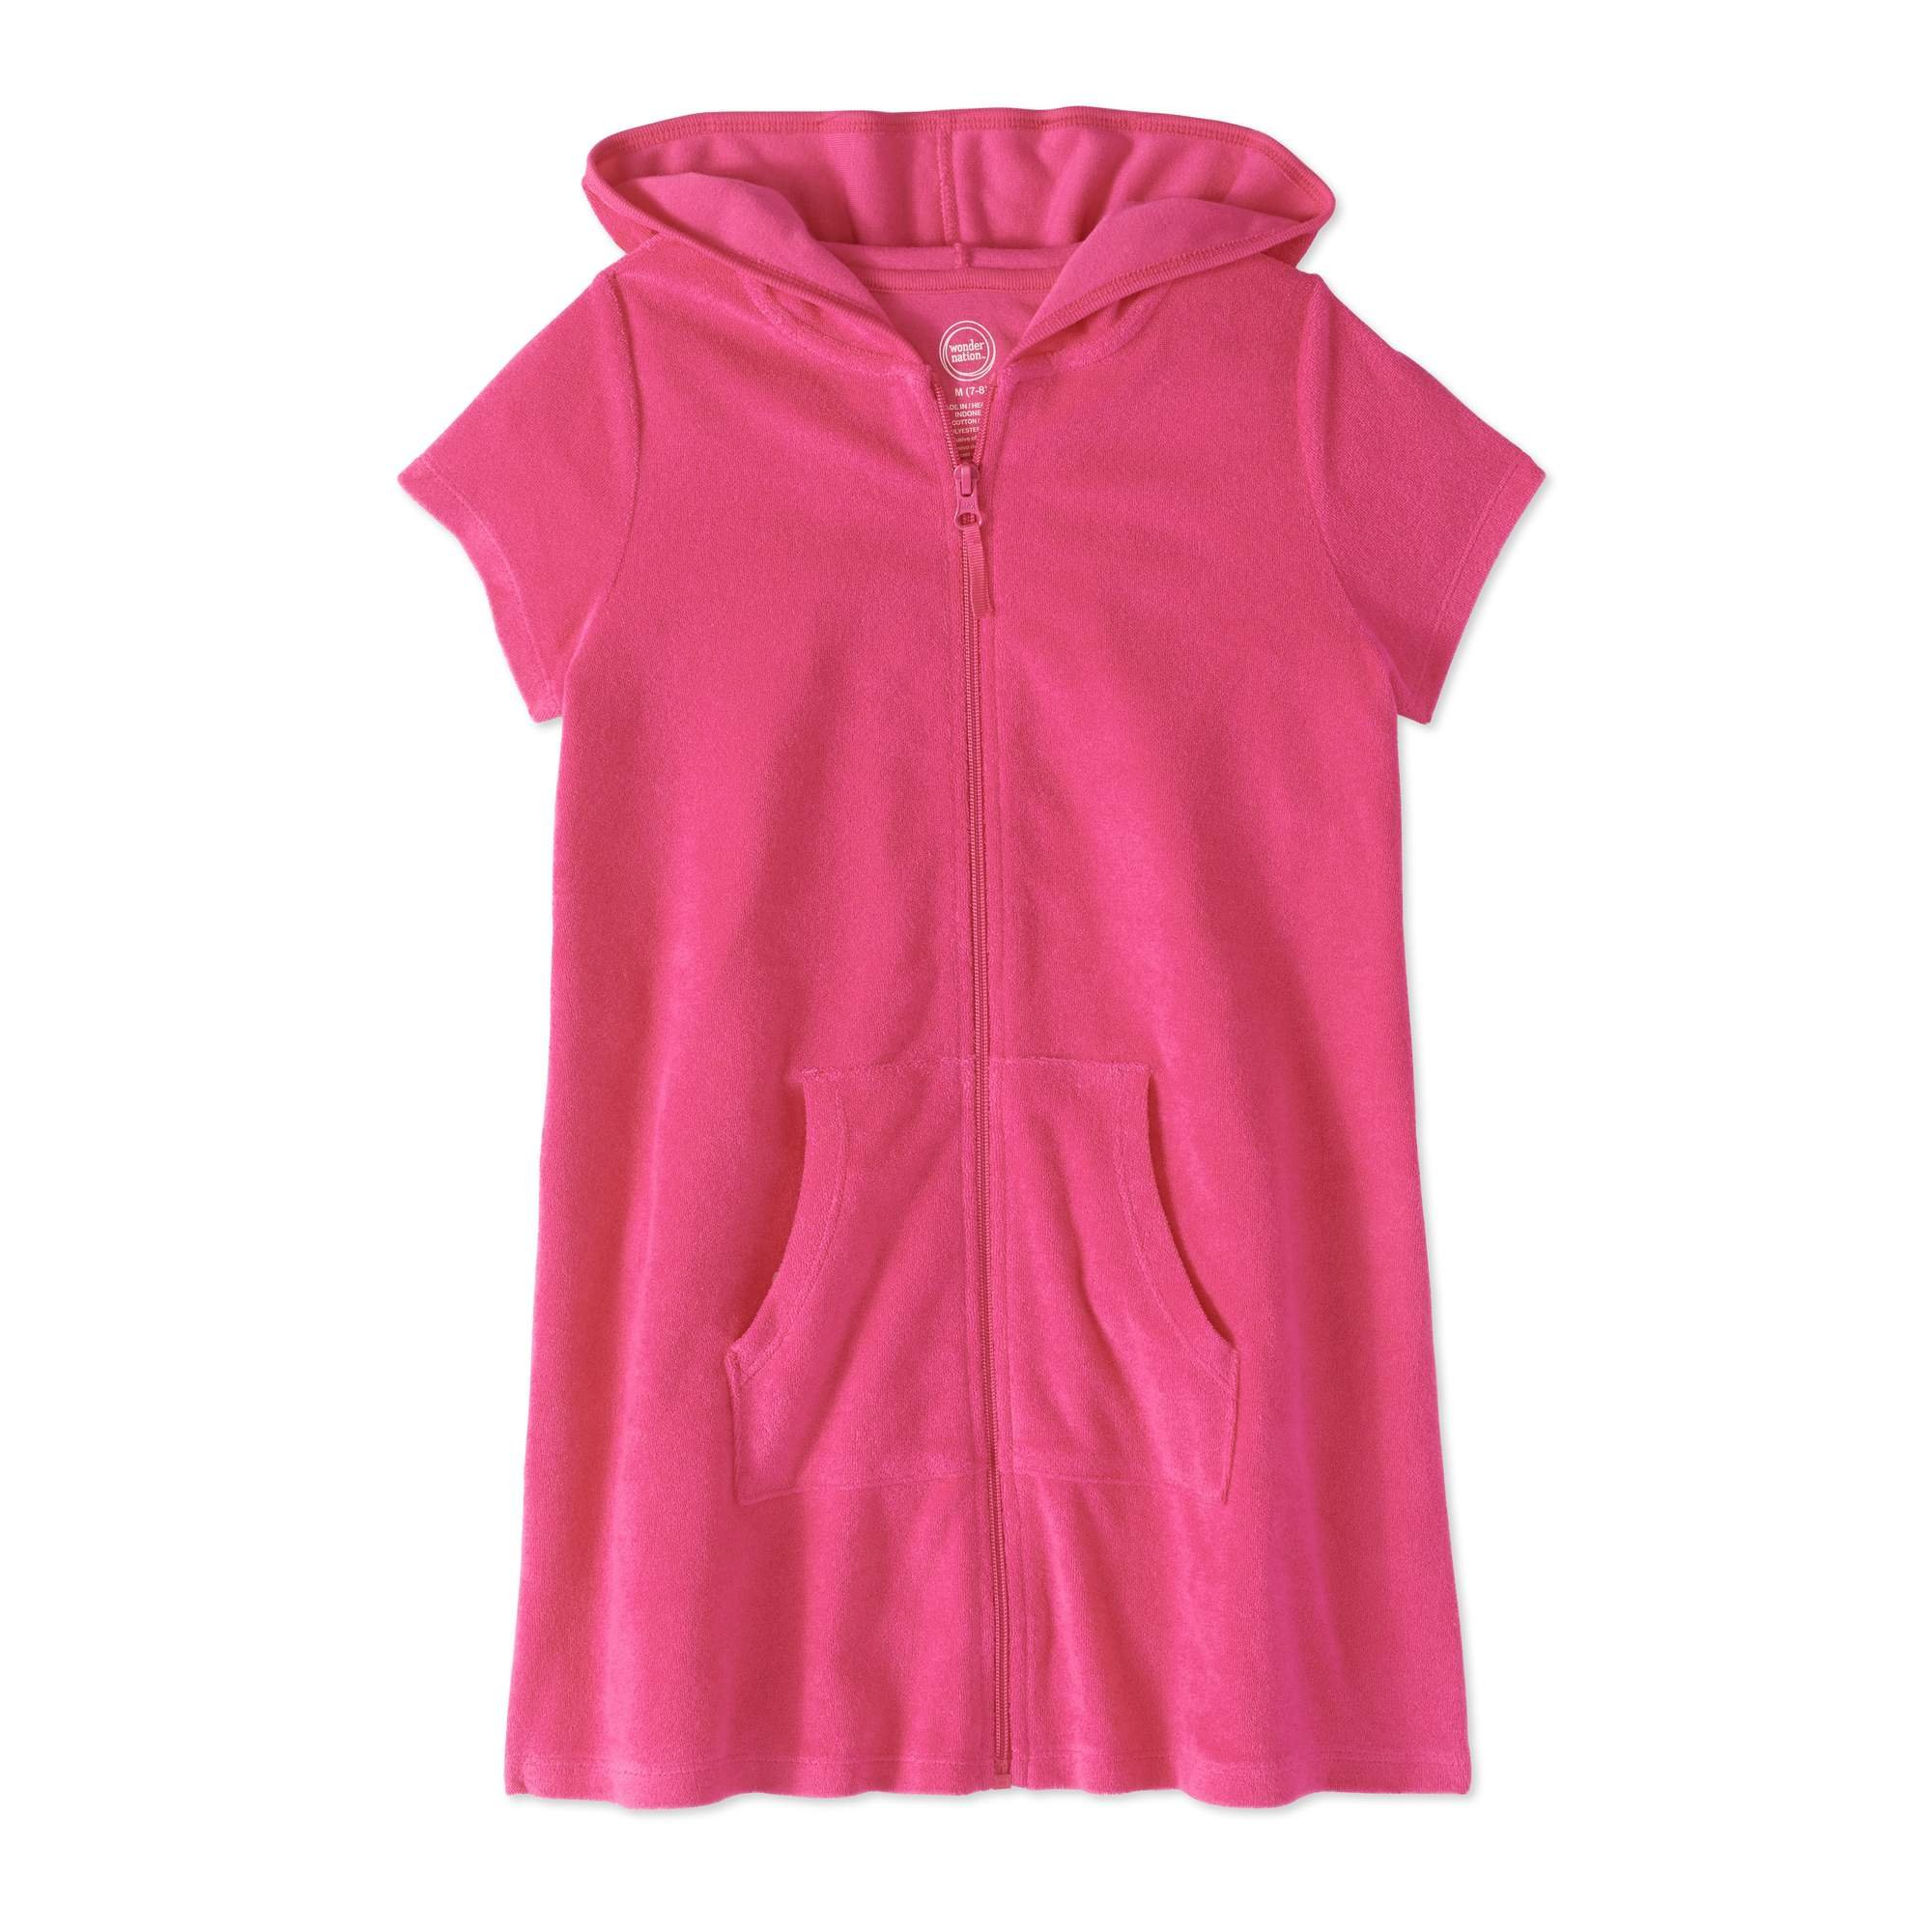 Wonder Nation Girls Hooded Zip Front Terry Swimsuit Cover Up (Small 6/6X, Radiant Burst Pink)